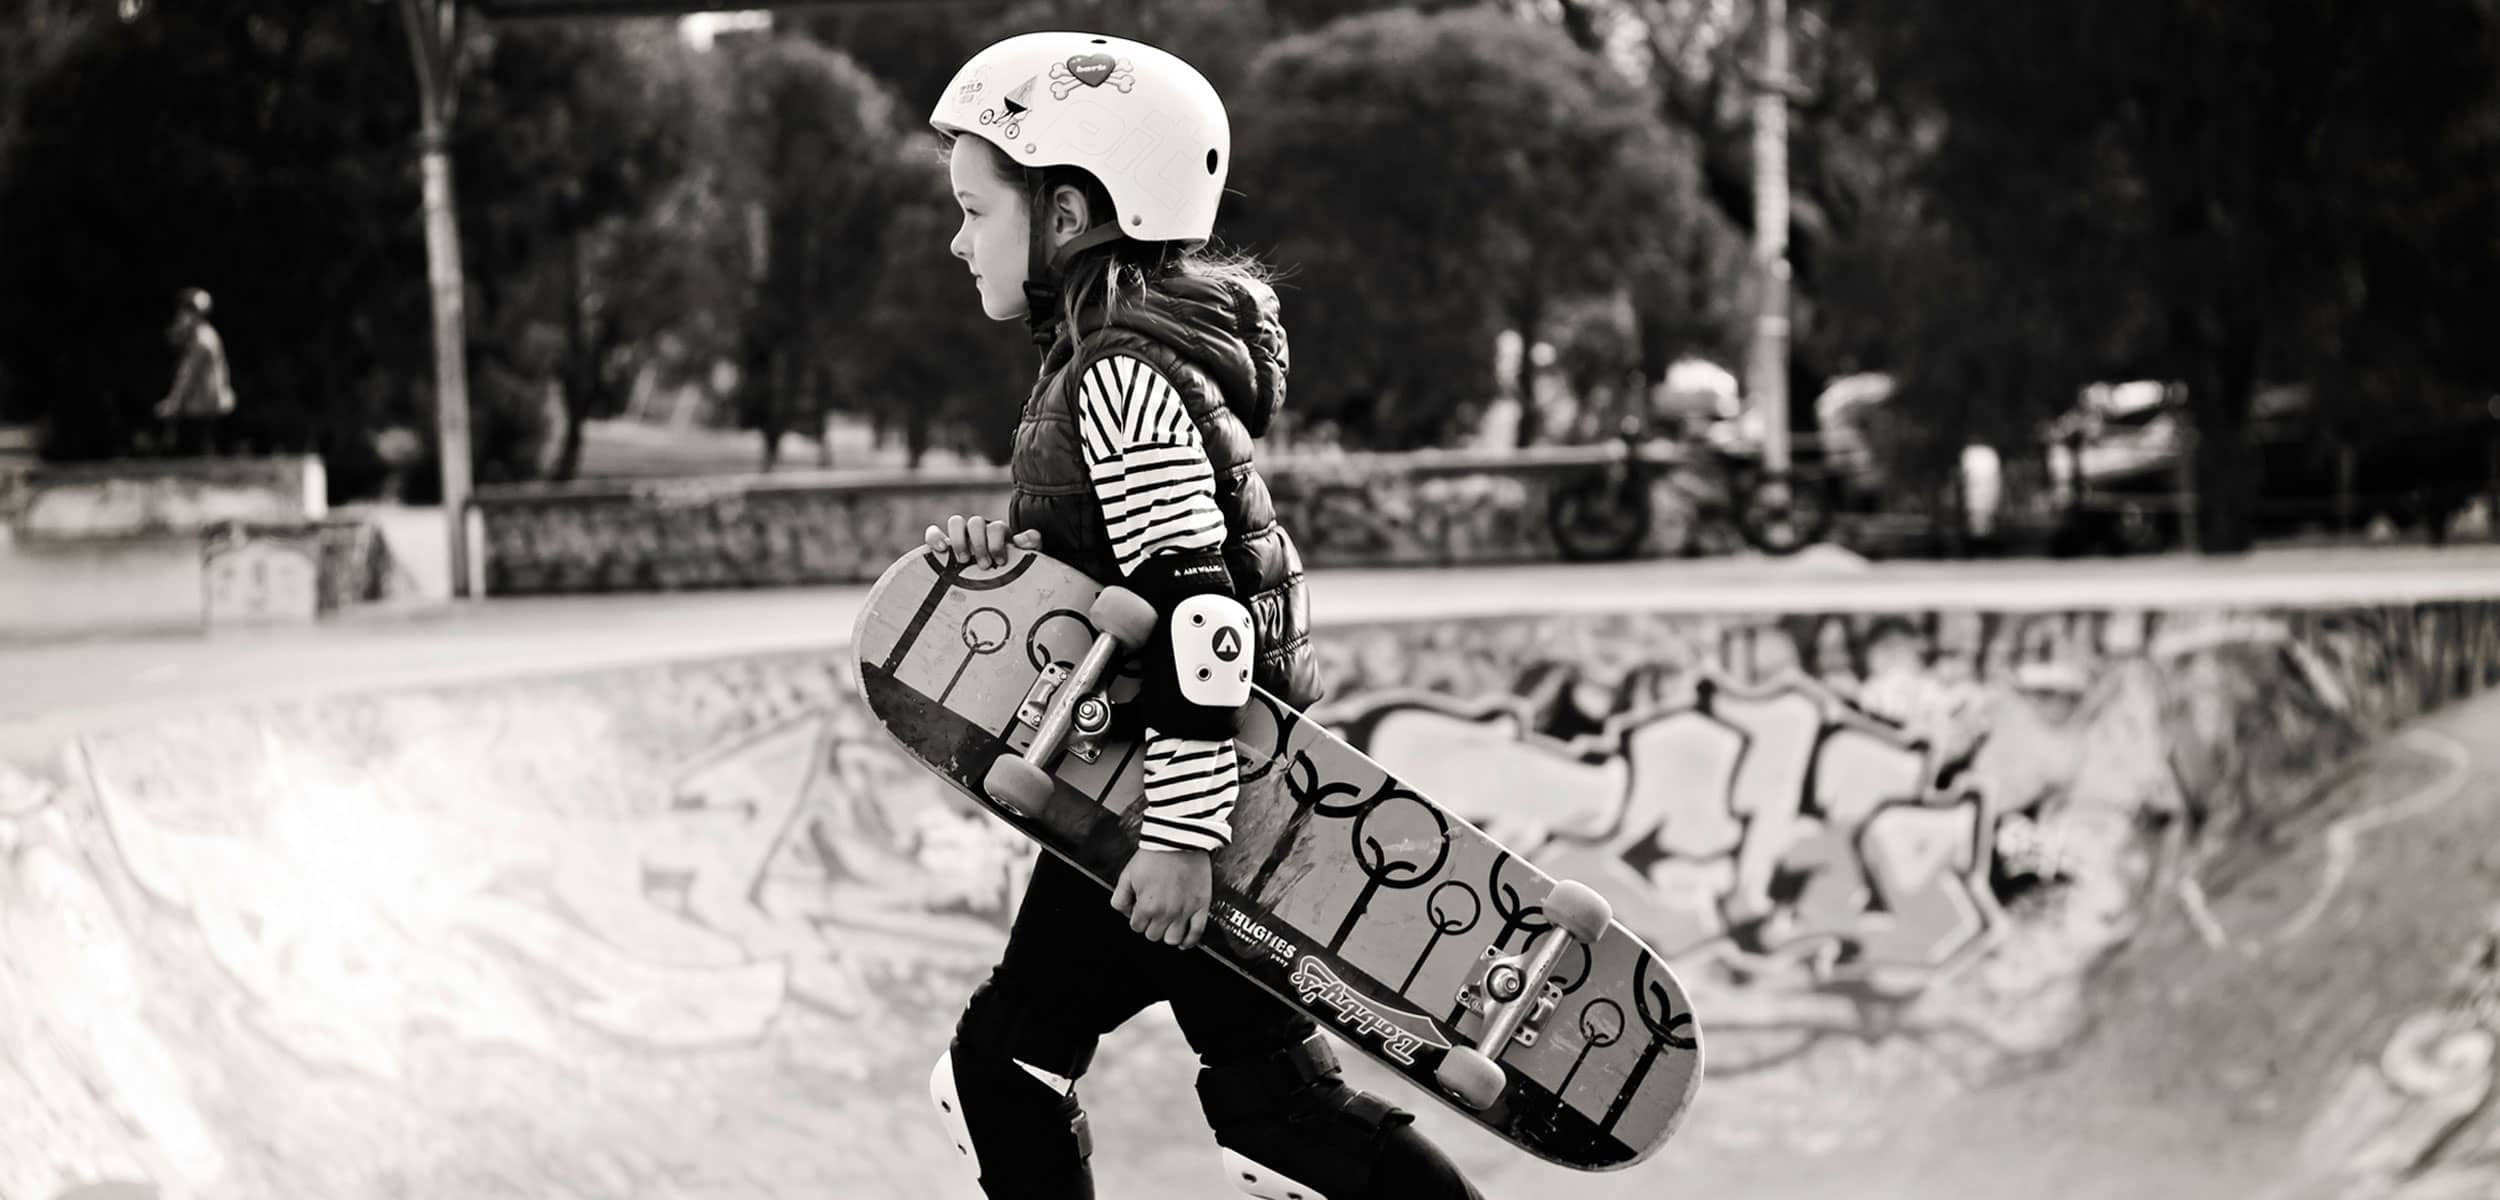 featured image: best skateboard for 8 year old